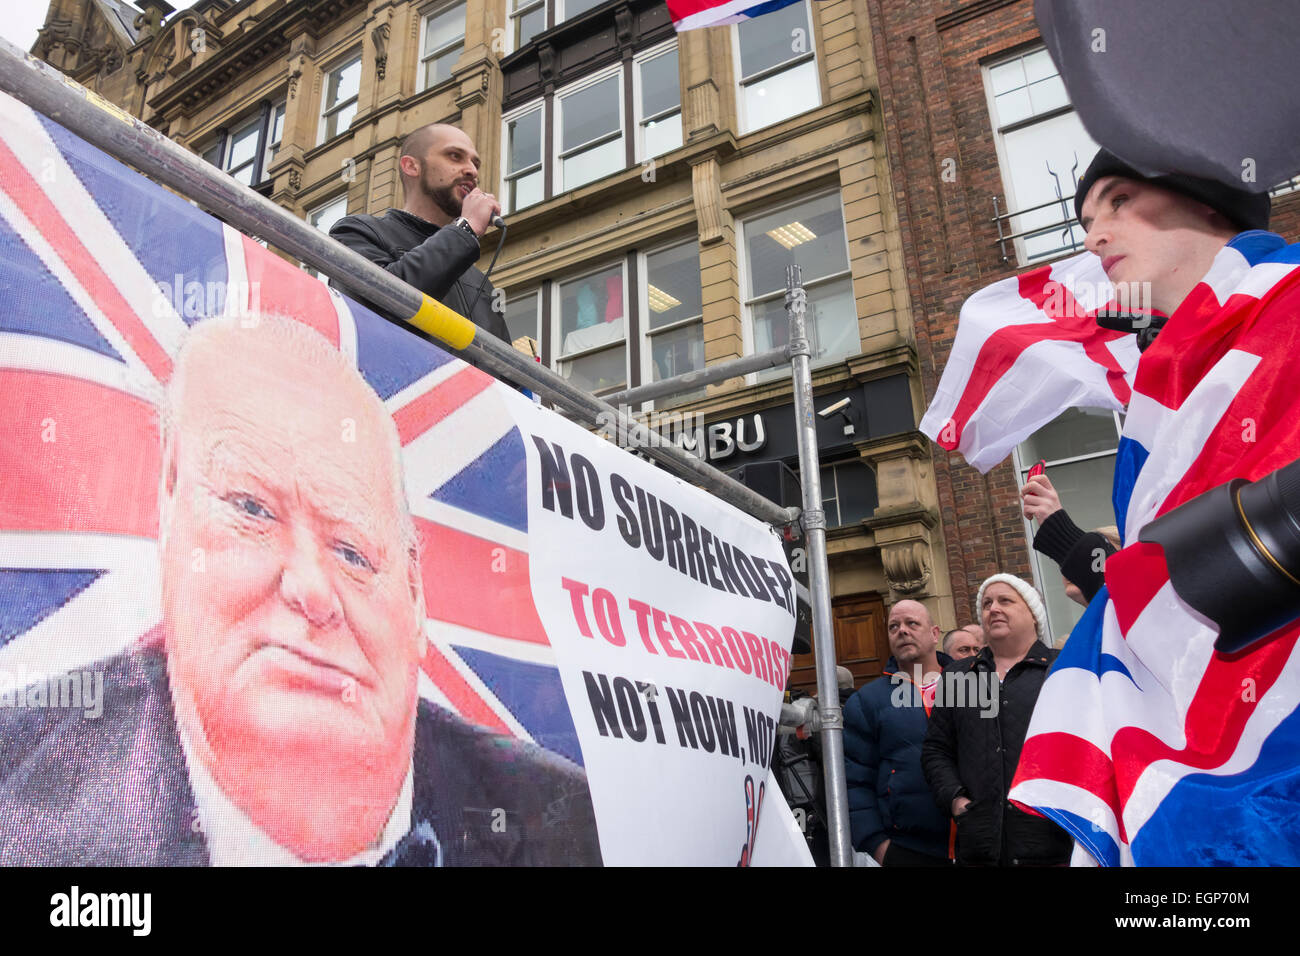 Newcastle upon Tyne, UK. 28th February, 2015. Speaker under Winston Churchill banner at first UK protest by Pegida - Stock Image